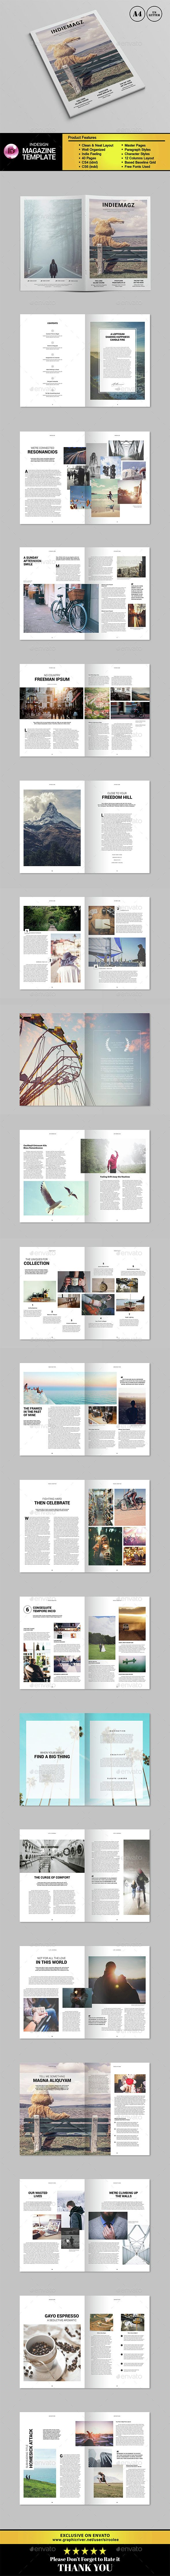 Indie Feeling Magazine | Indie, Magazines and Template